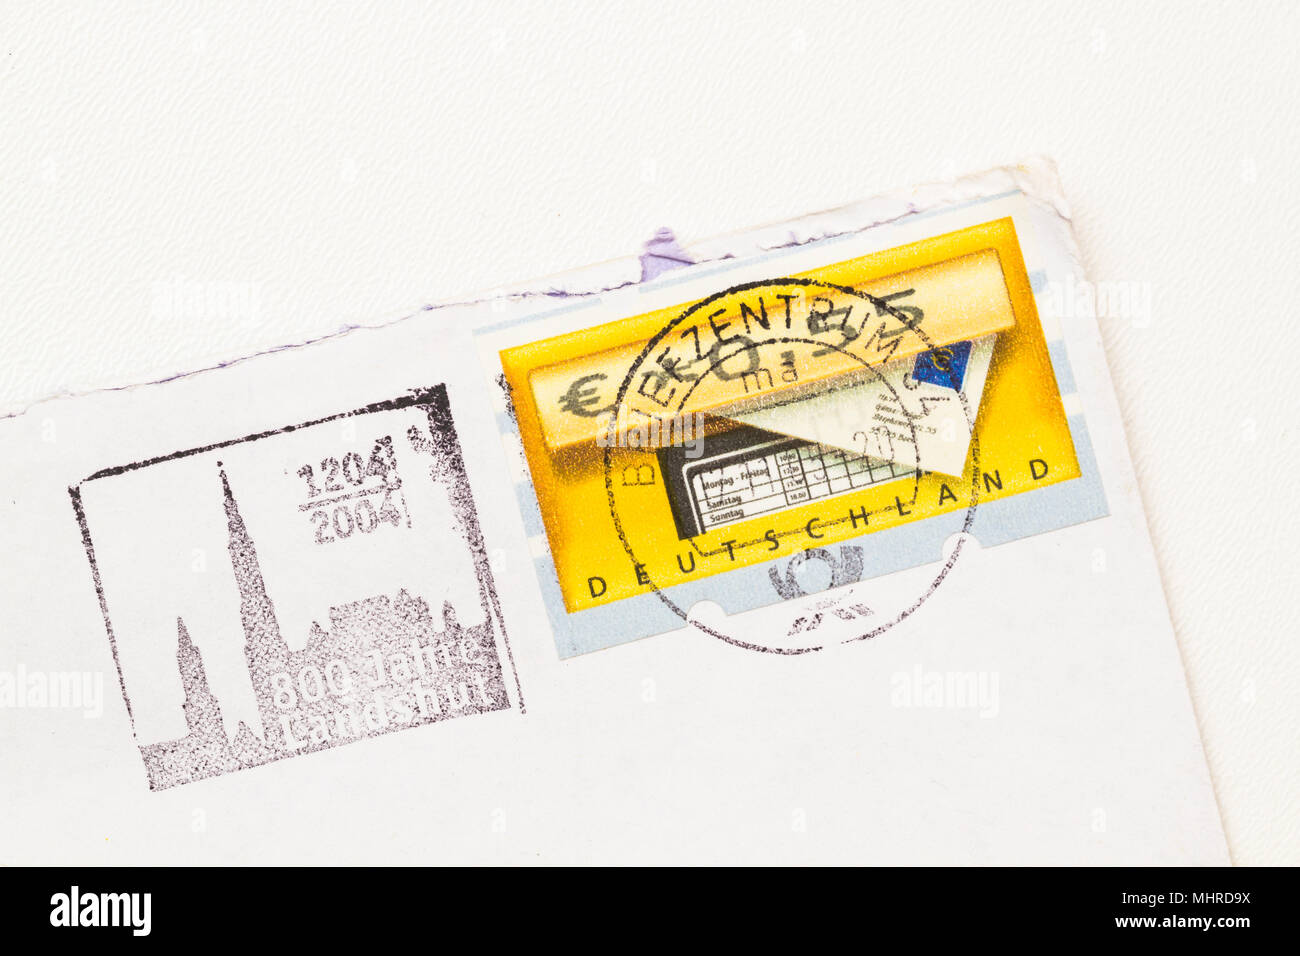 Envelope dated from 2004 with Landshut, Germany Postage stamp on white paper, white background. - Stock Image